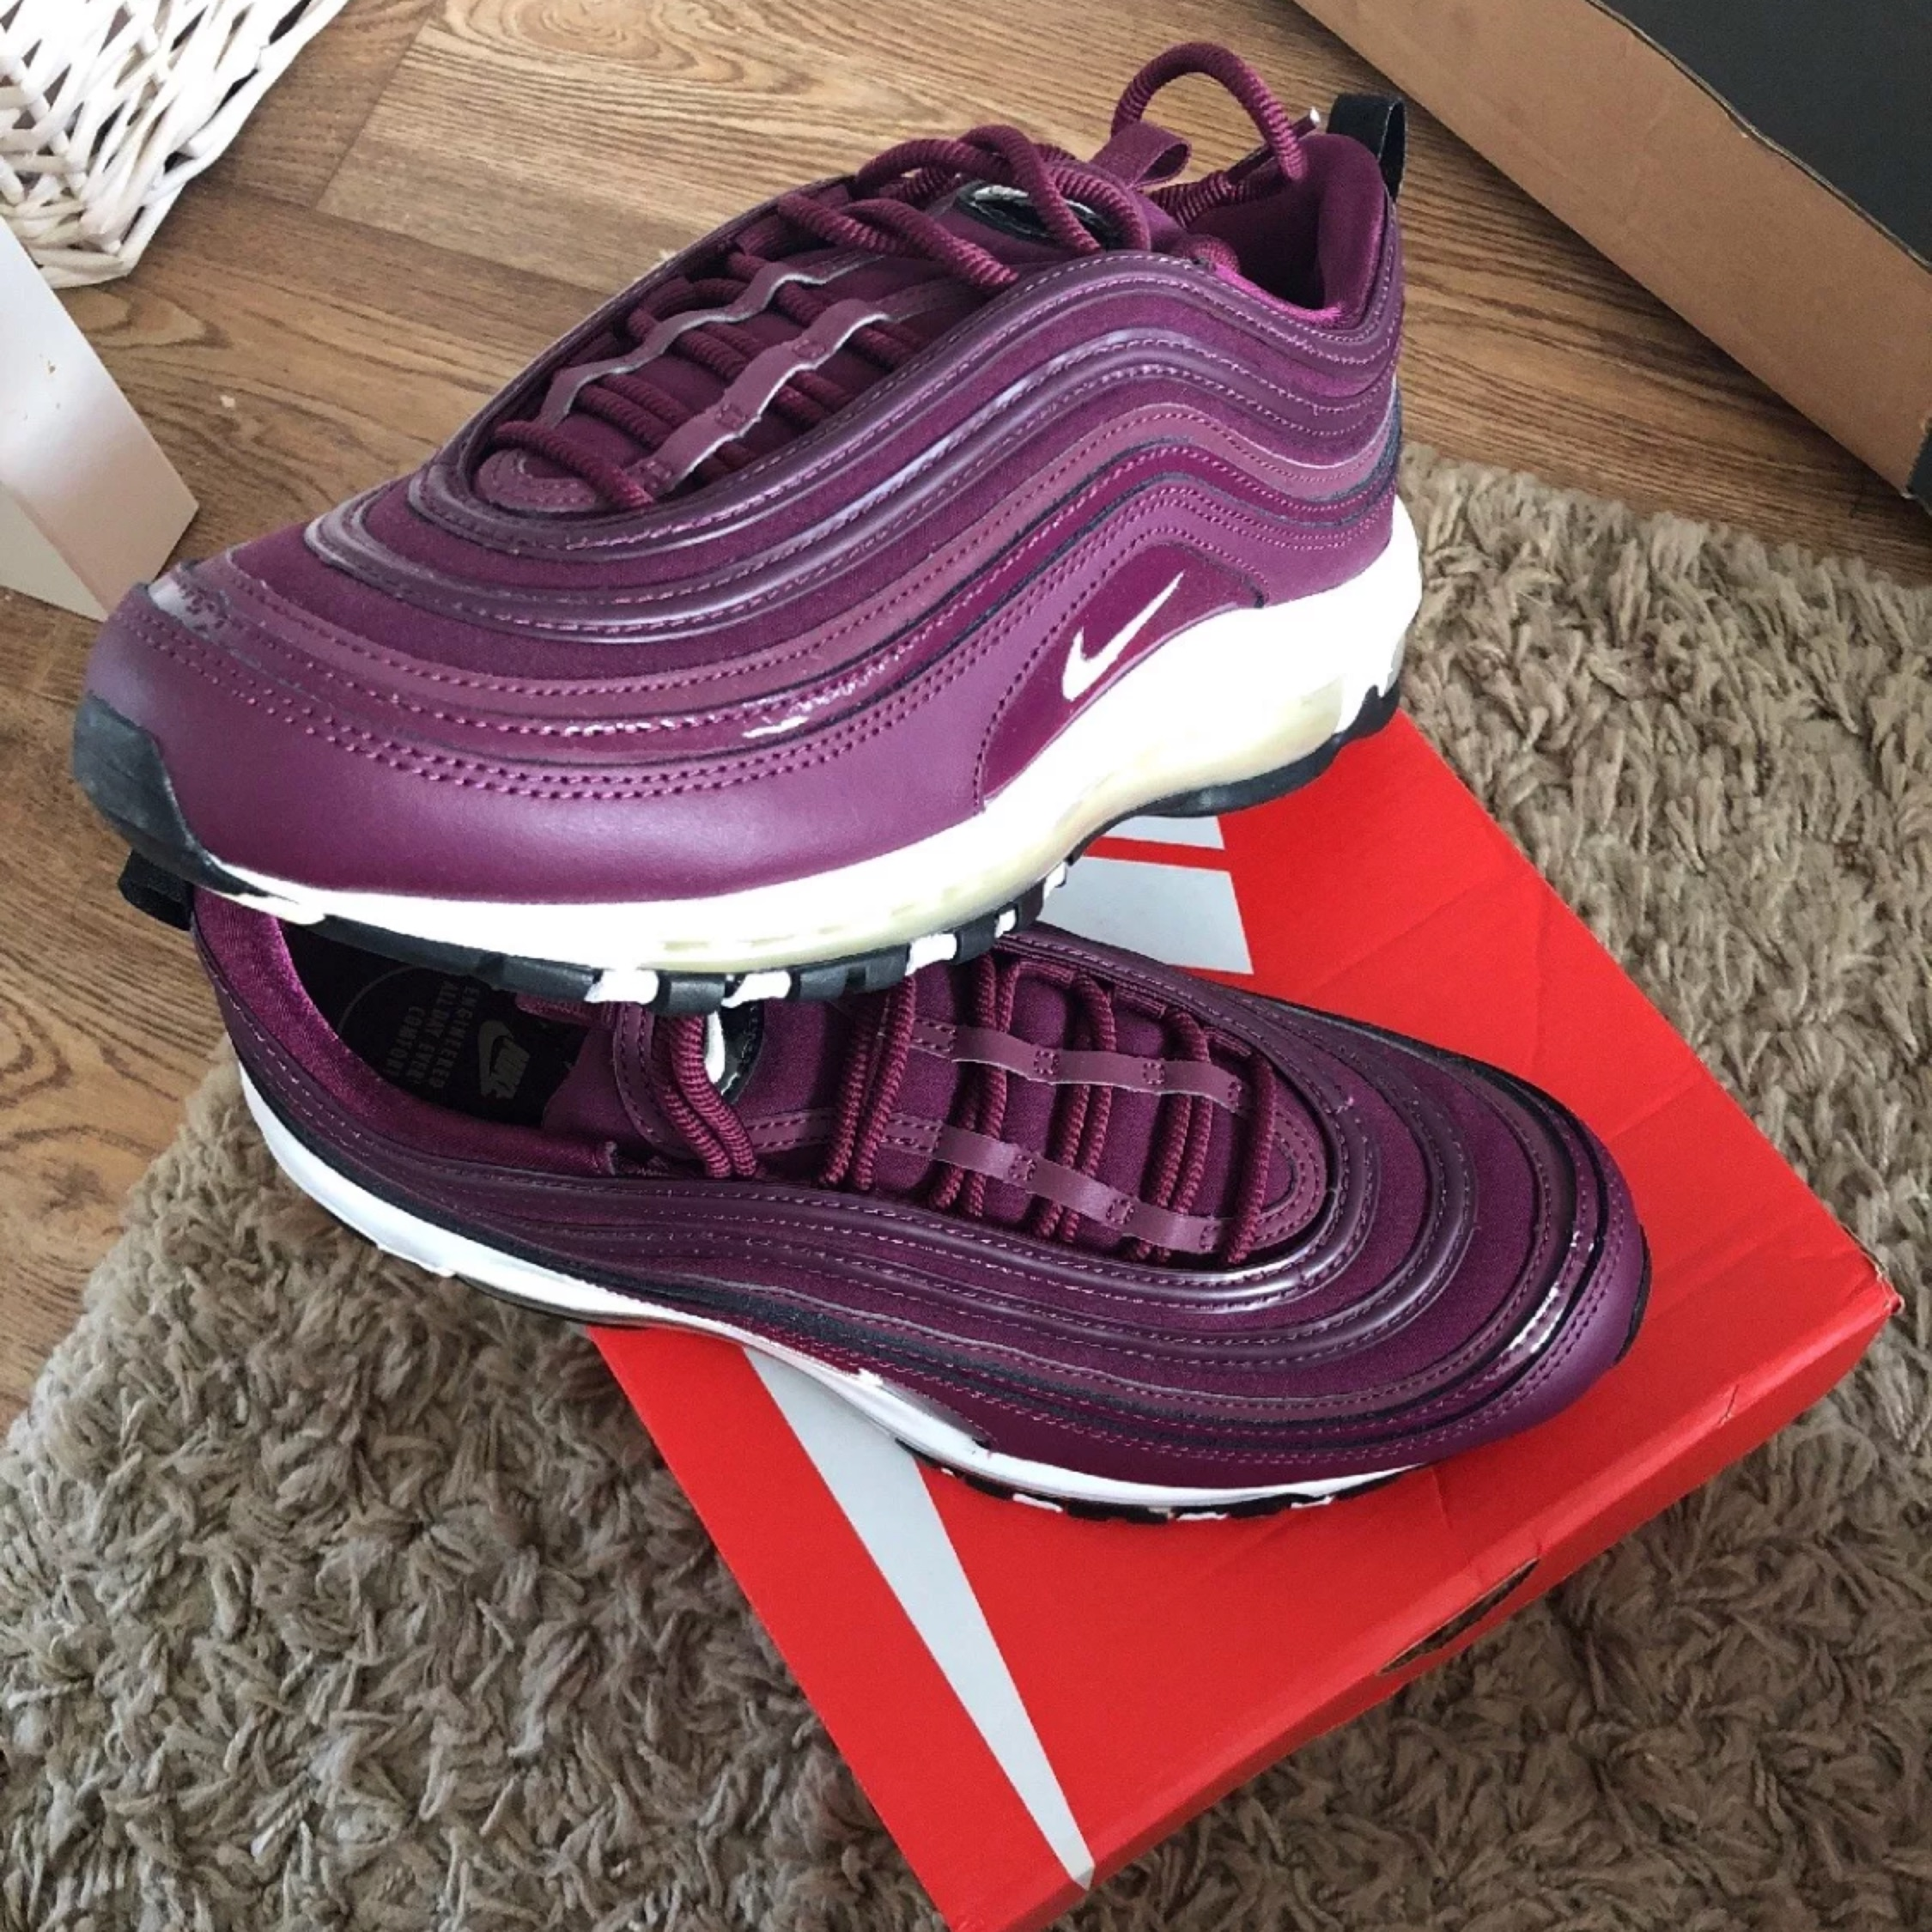 nike air max 97 pink white Westfield Fishery